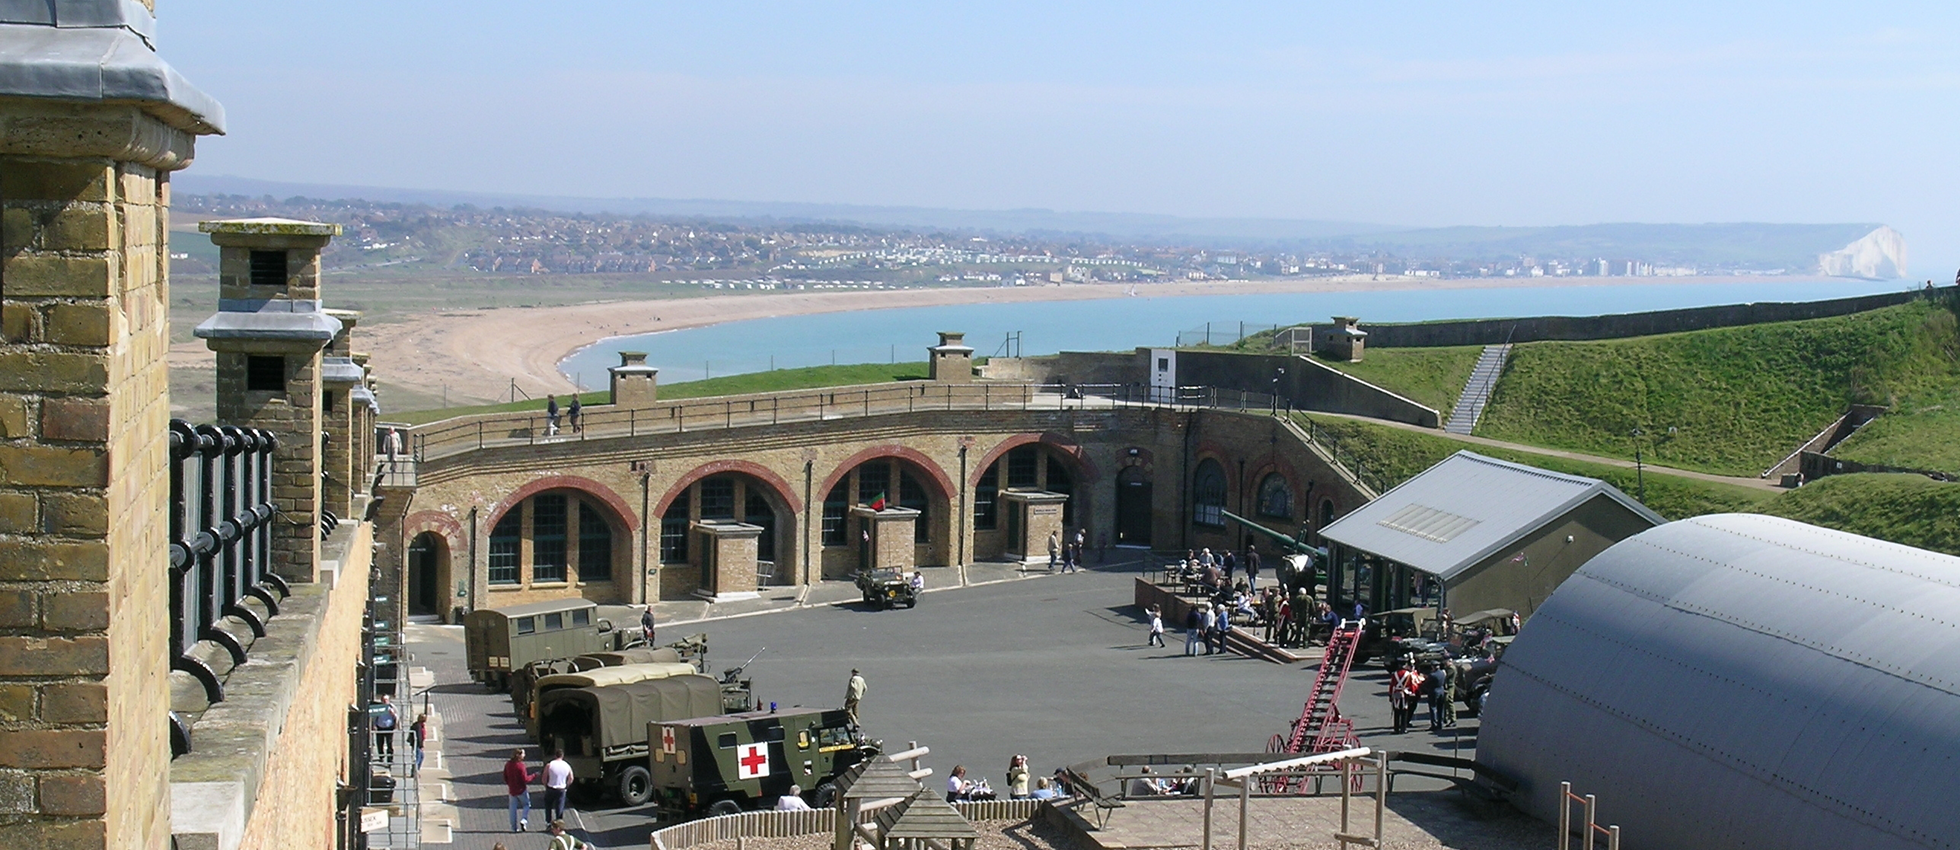 Discover The Secrets Of Newhaven Fort in February Half Term